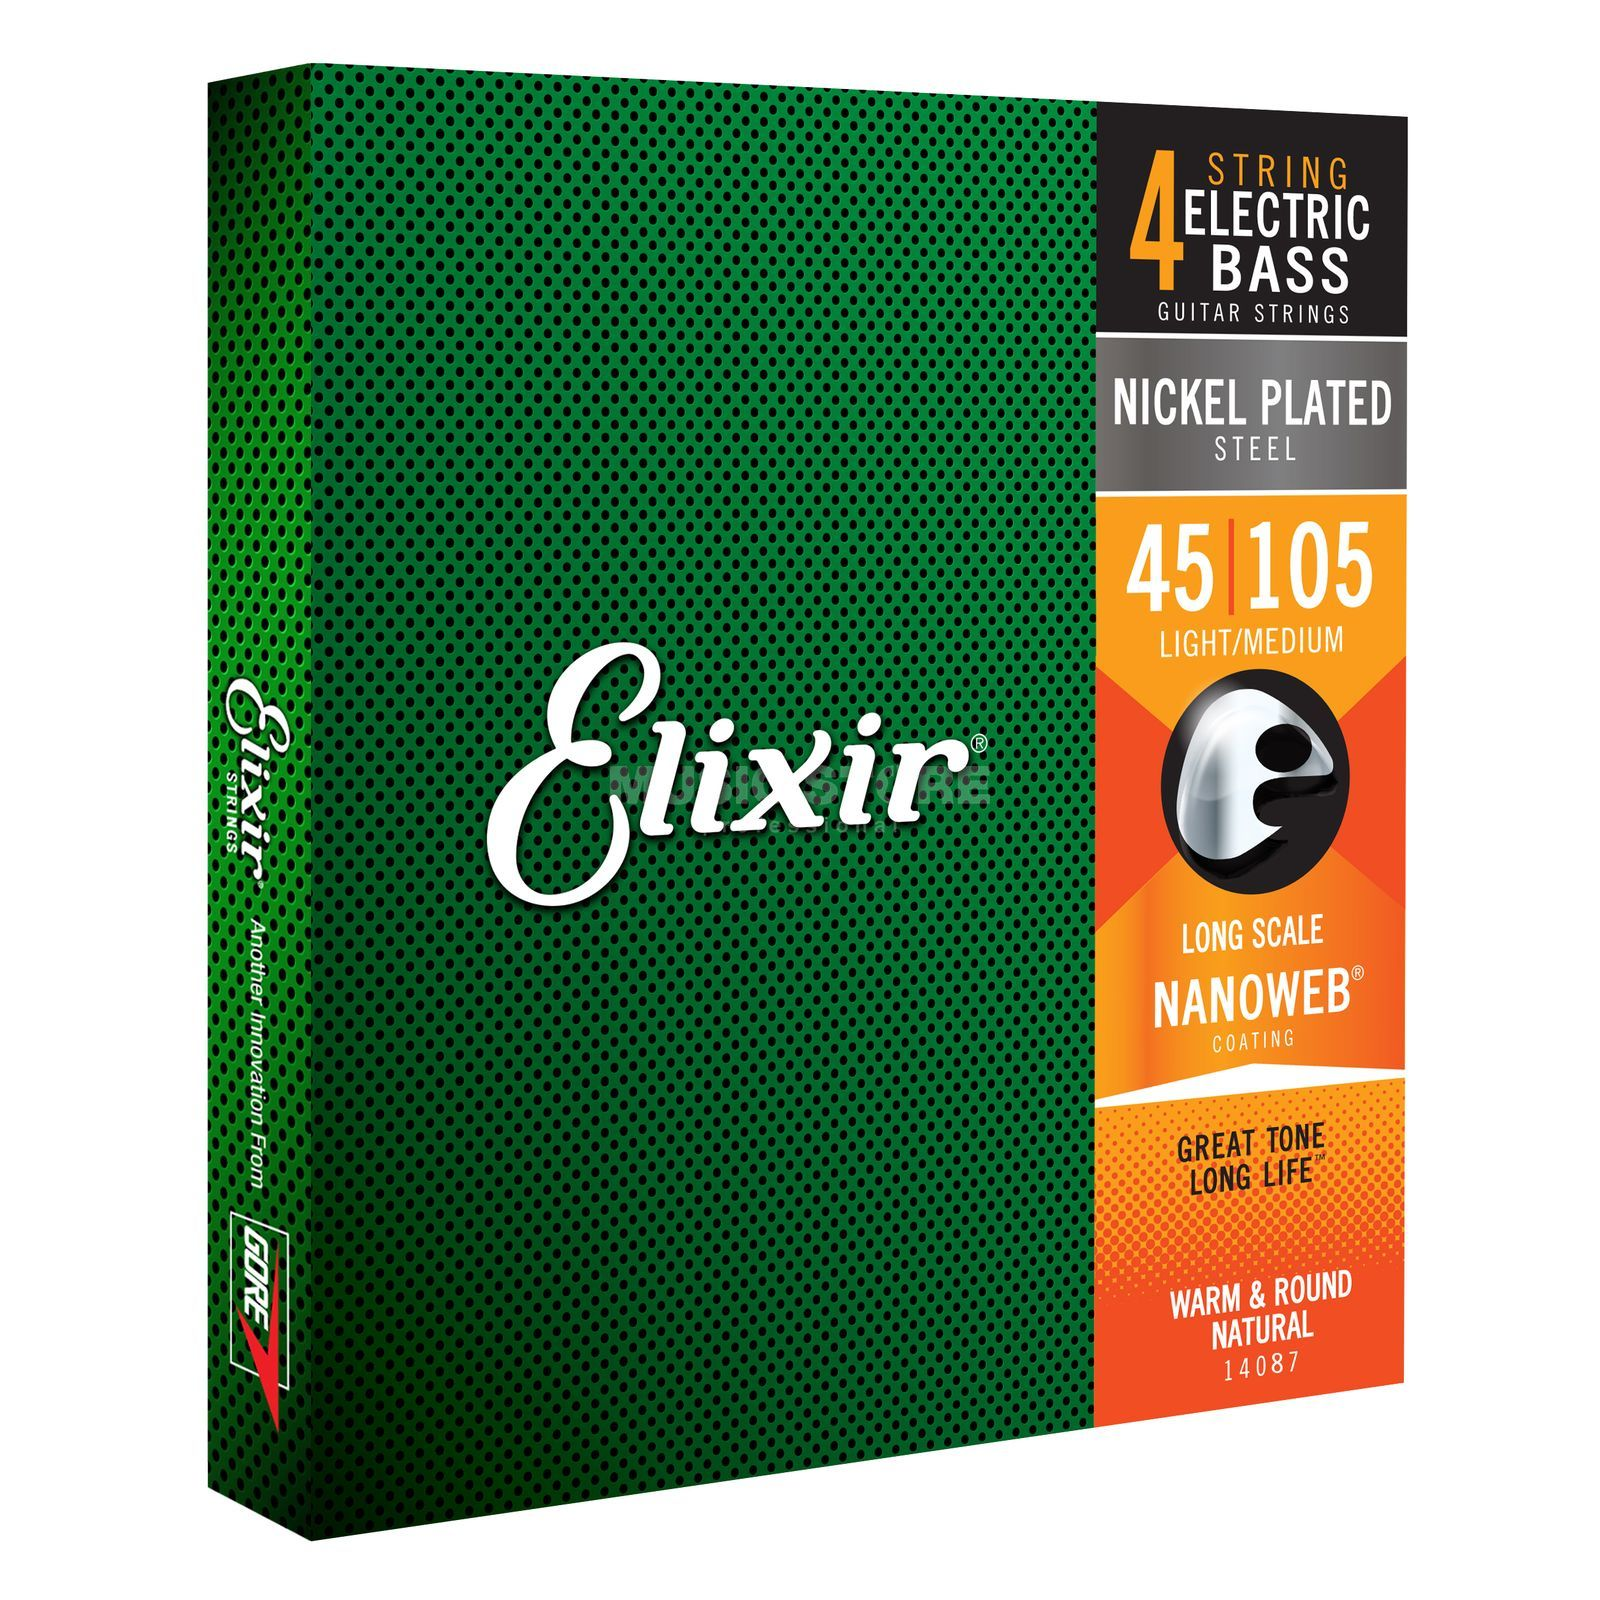 Elixir Bass Strings 45-105 NanoWeb X-Longscale Medium 14087 Produktbillede